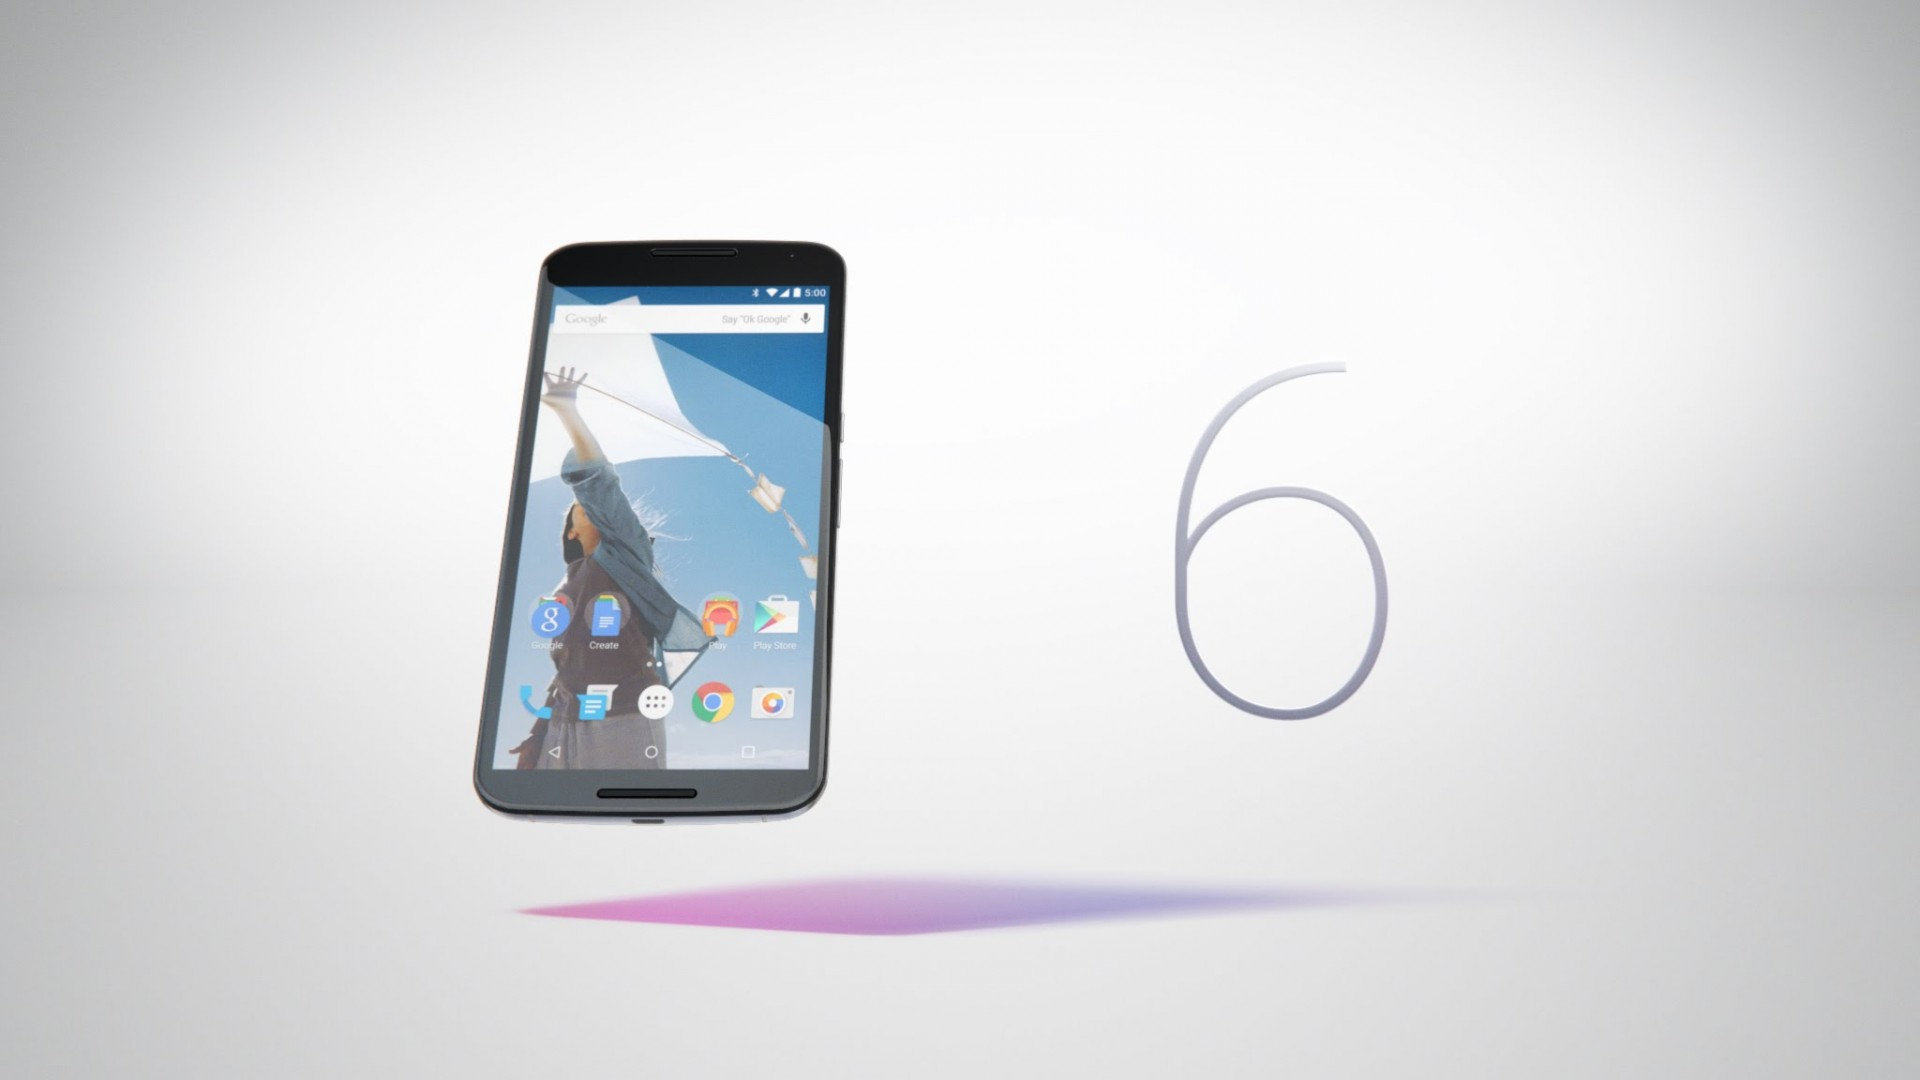 Google Nexus 6 is Not So Much Like the Nexus 5: Is that a Bad Thing?